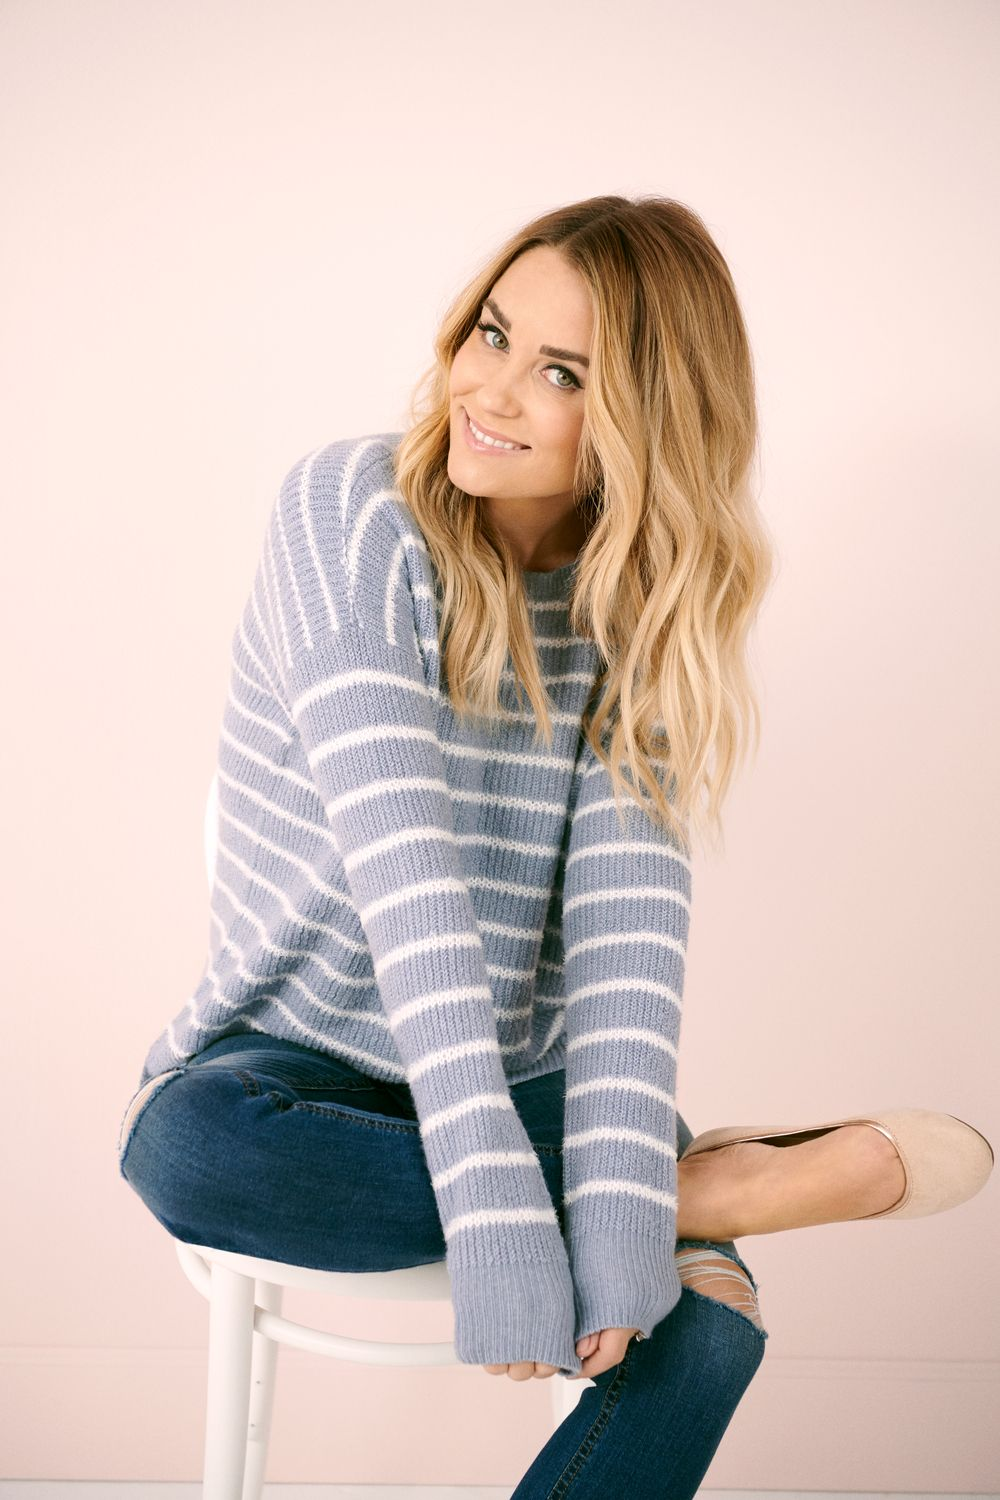 4e0c6dd8ca Lauren Conrad wearing the January 2019 LC Lauren Conrad Collection |  Available at Kohl's